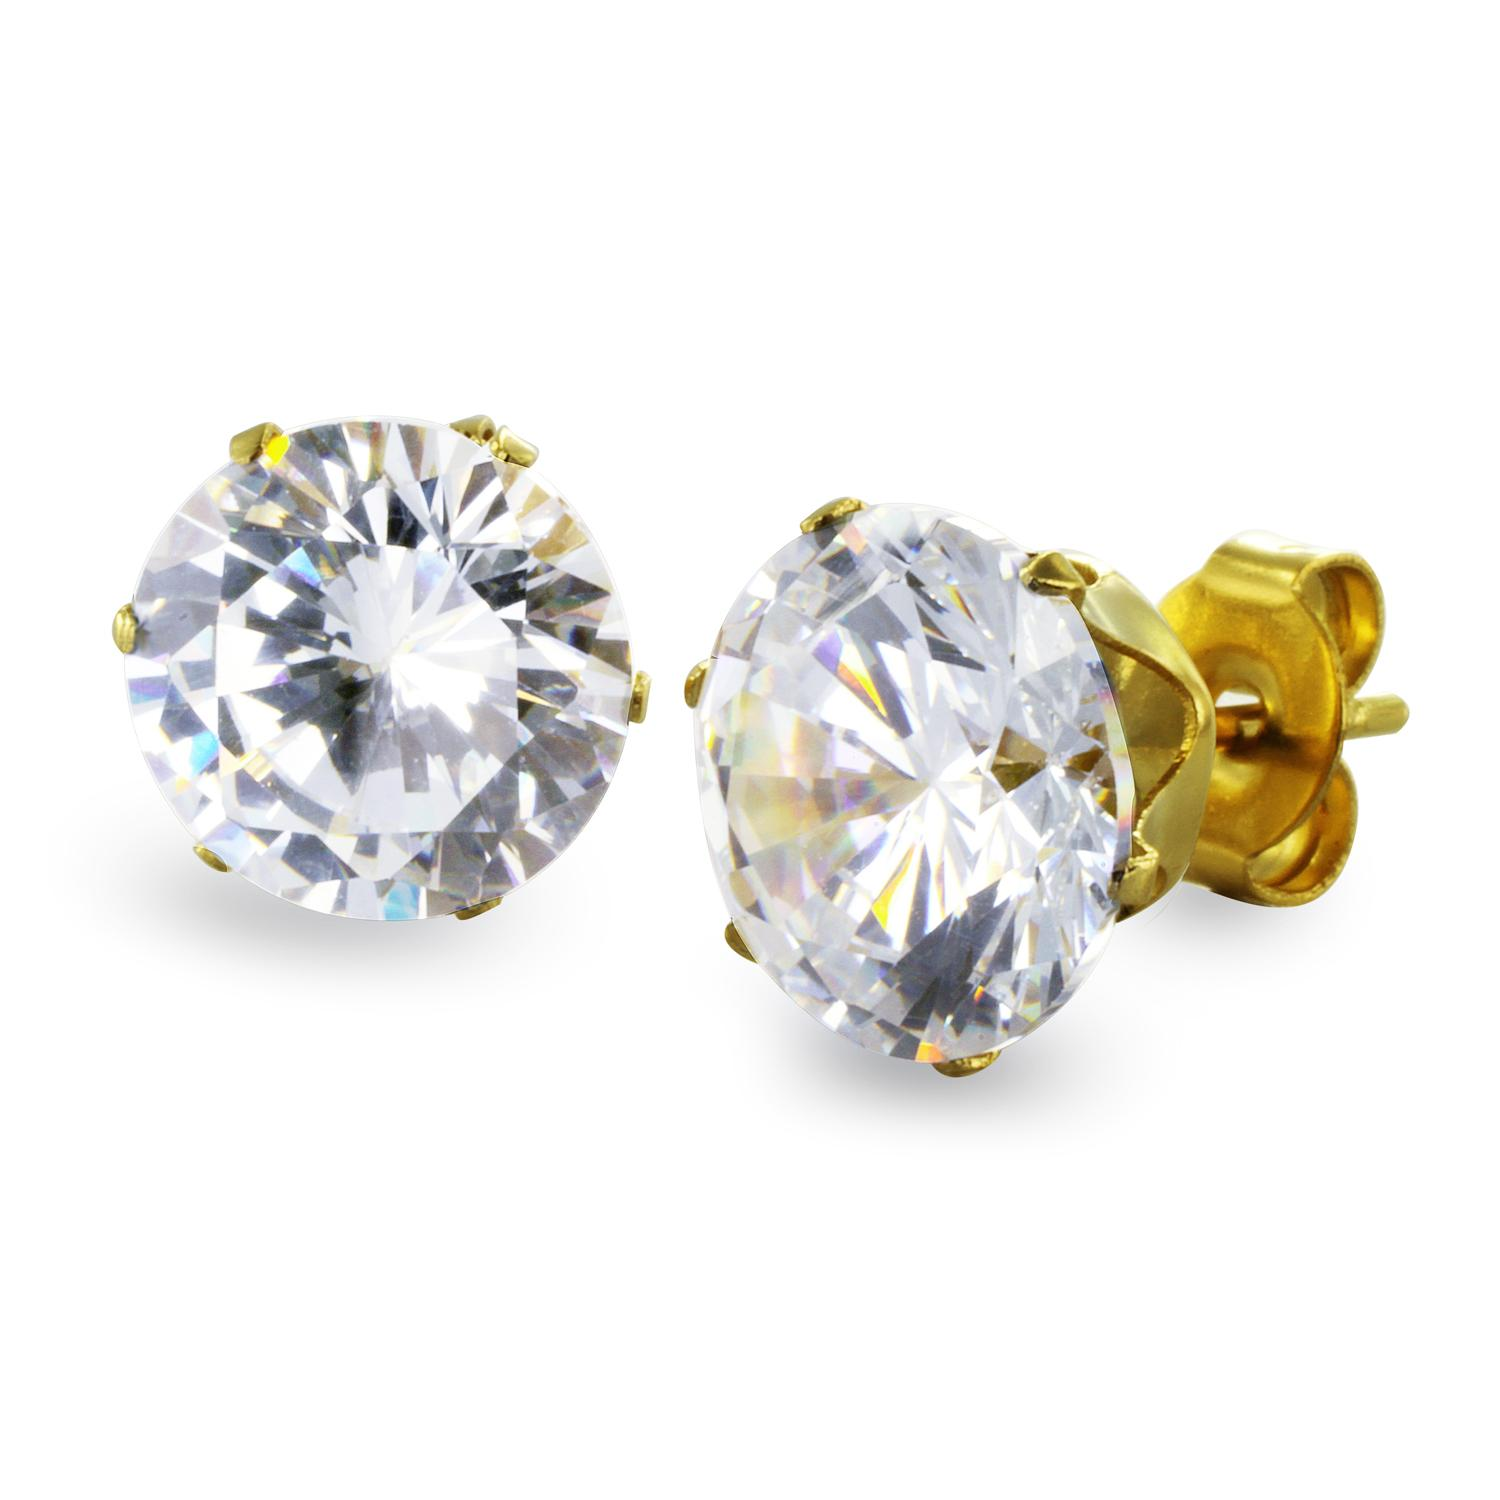 Gold Plated Stainless Steel Stud Earrings with Round Clear CZ - 9 mm